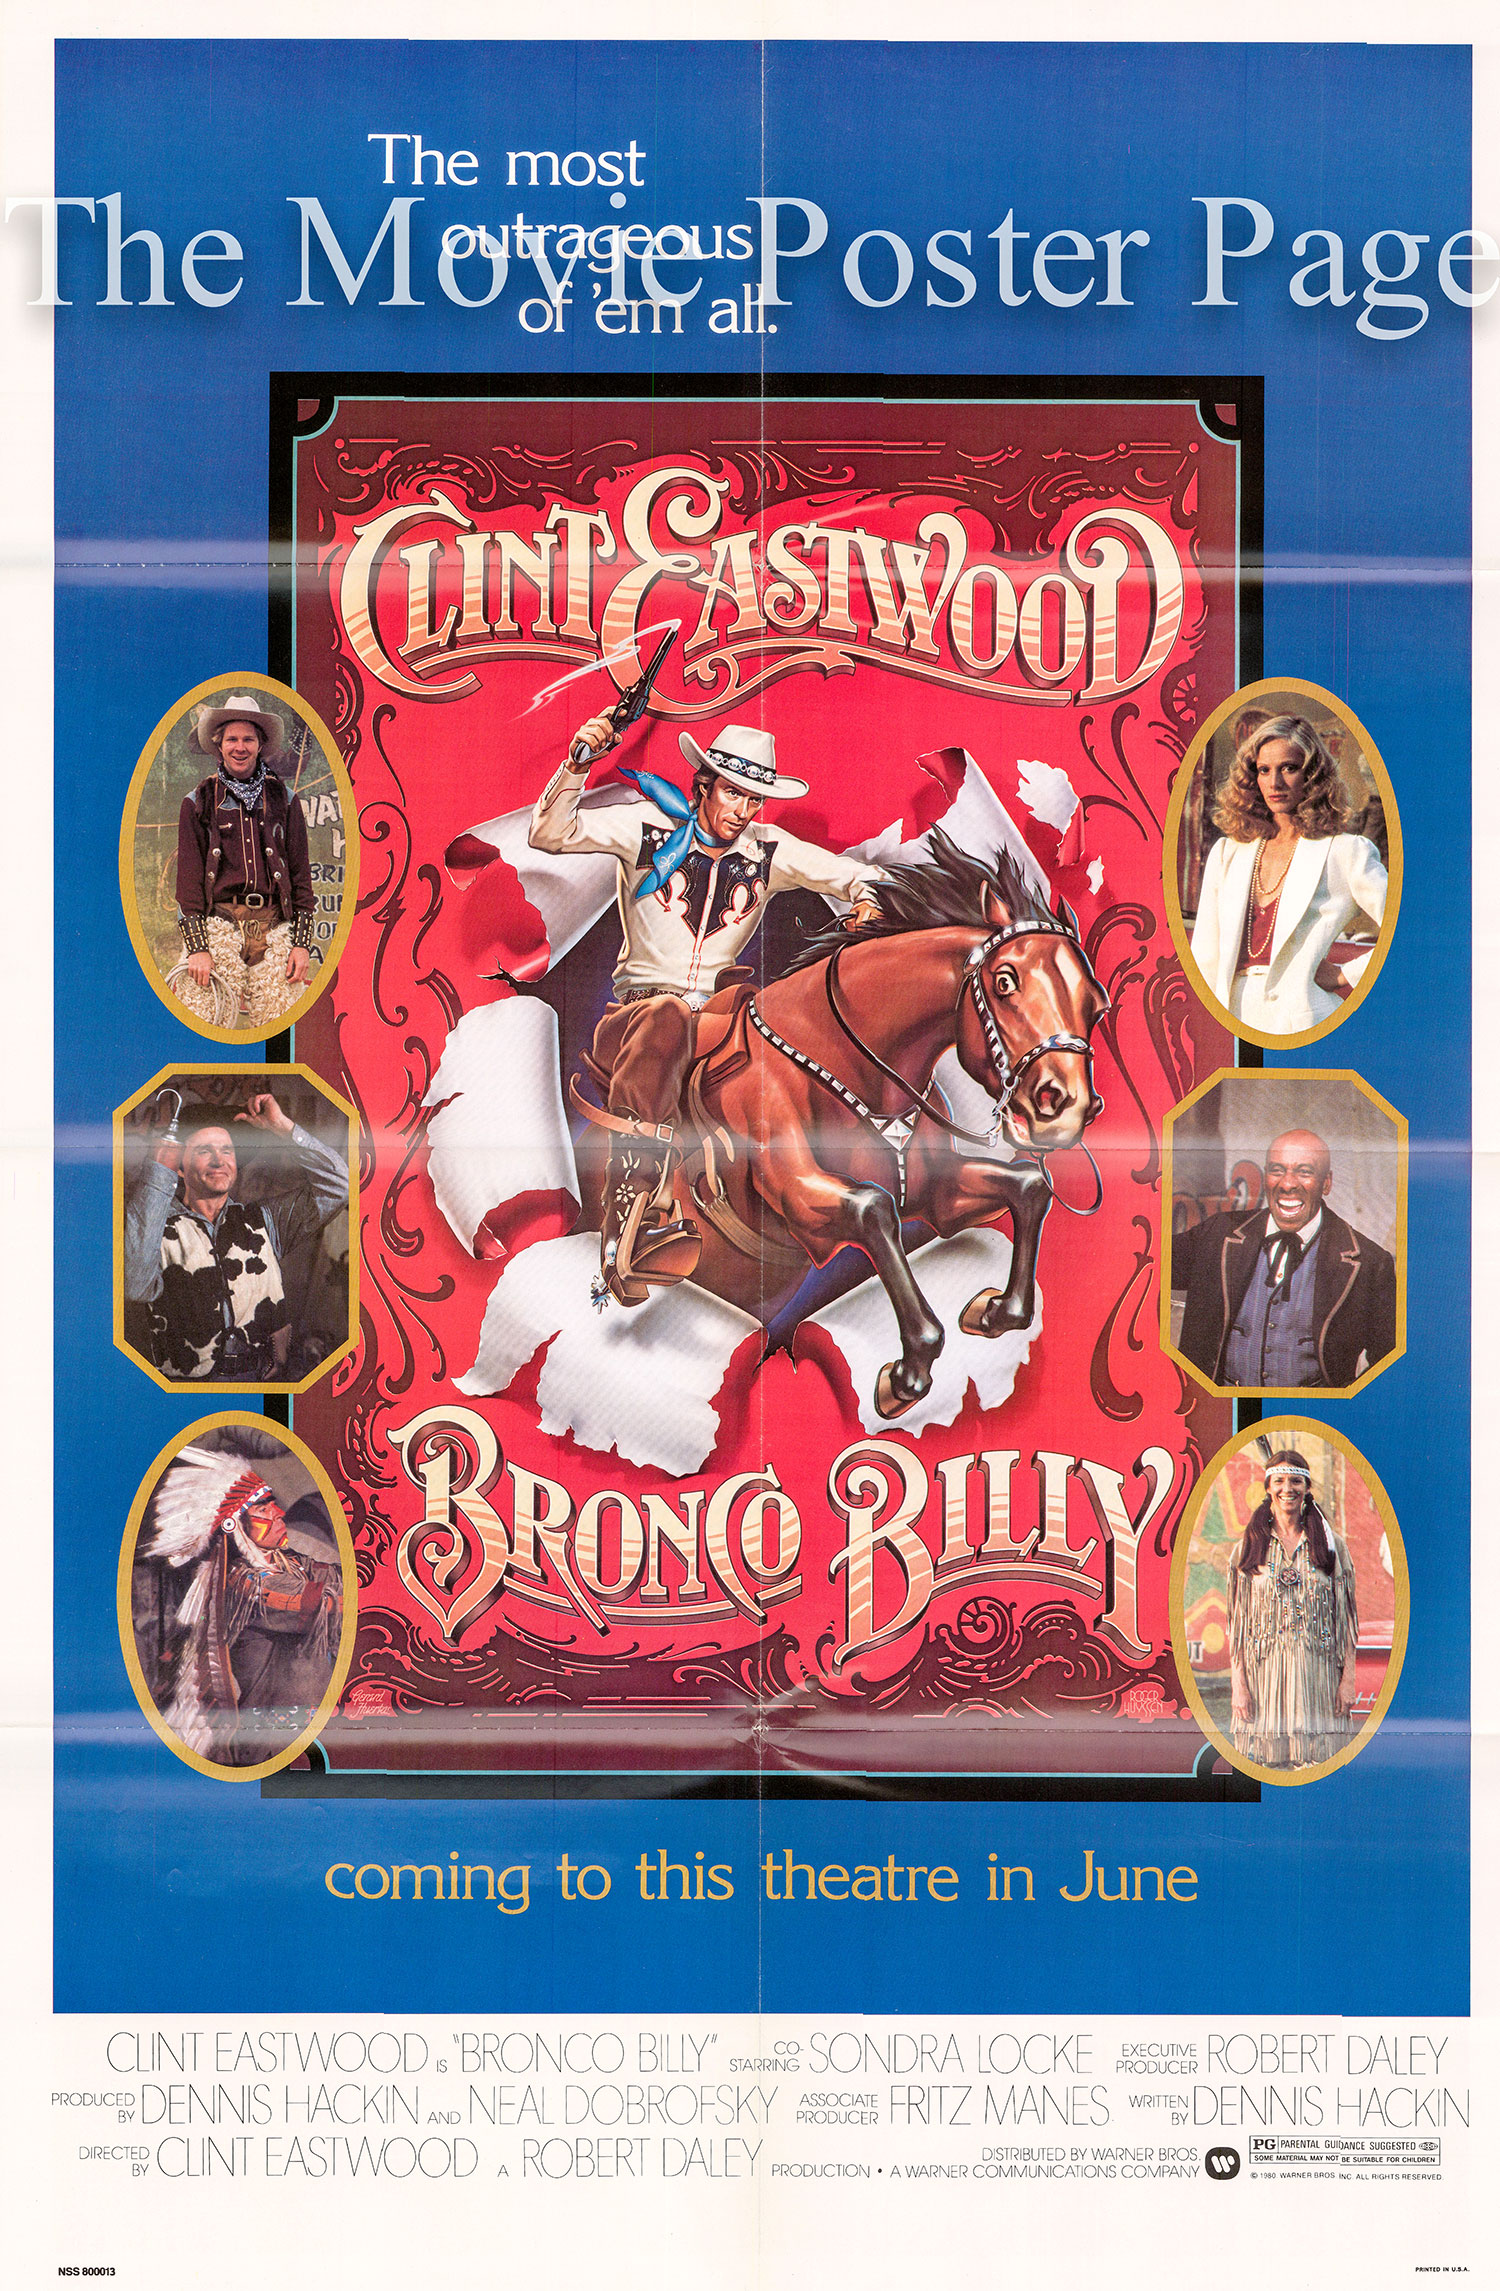 Pictured is a US advance one-sheet poster for the 1980 Clint Eastwood film Bronco Billy starring Clint Eastwood and Bronco Billy.